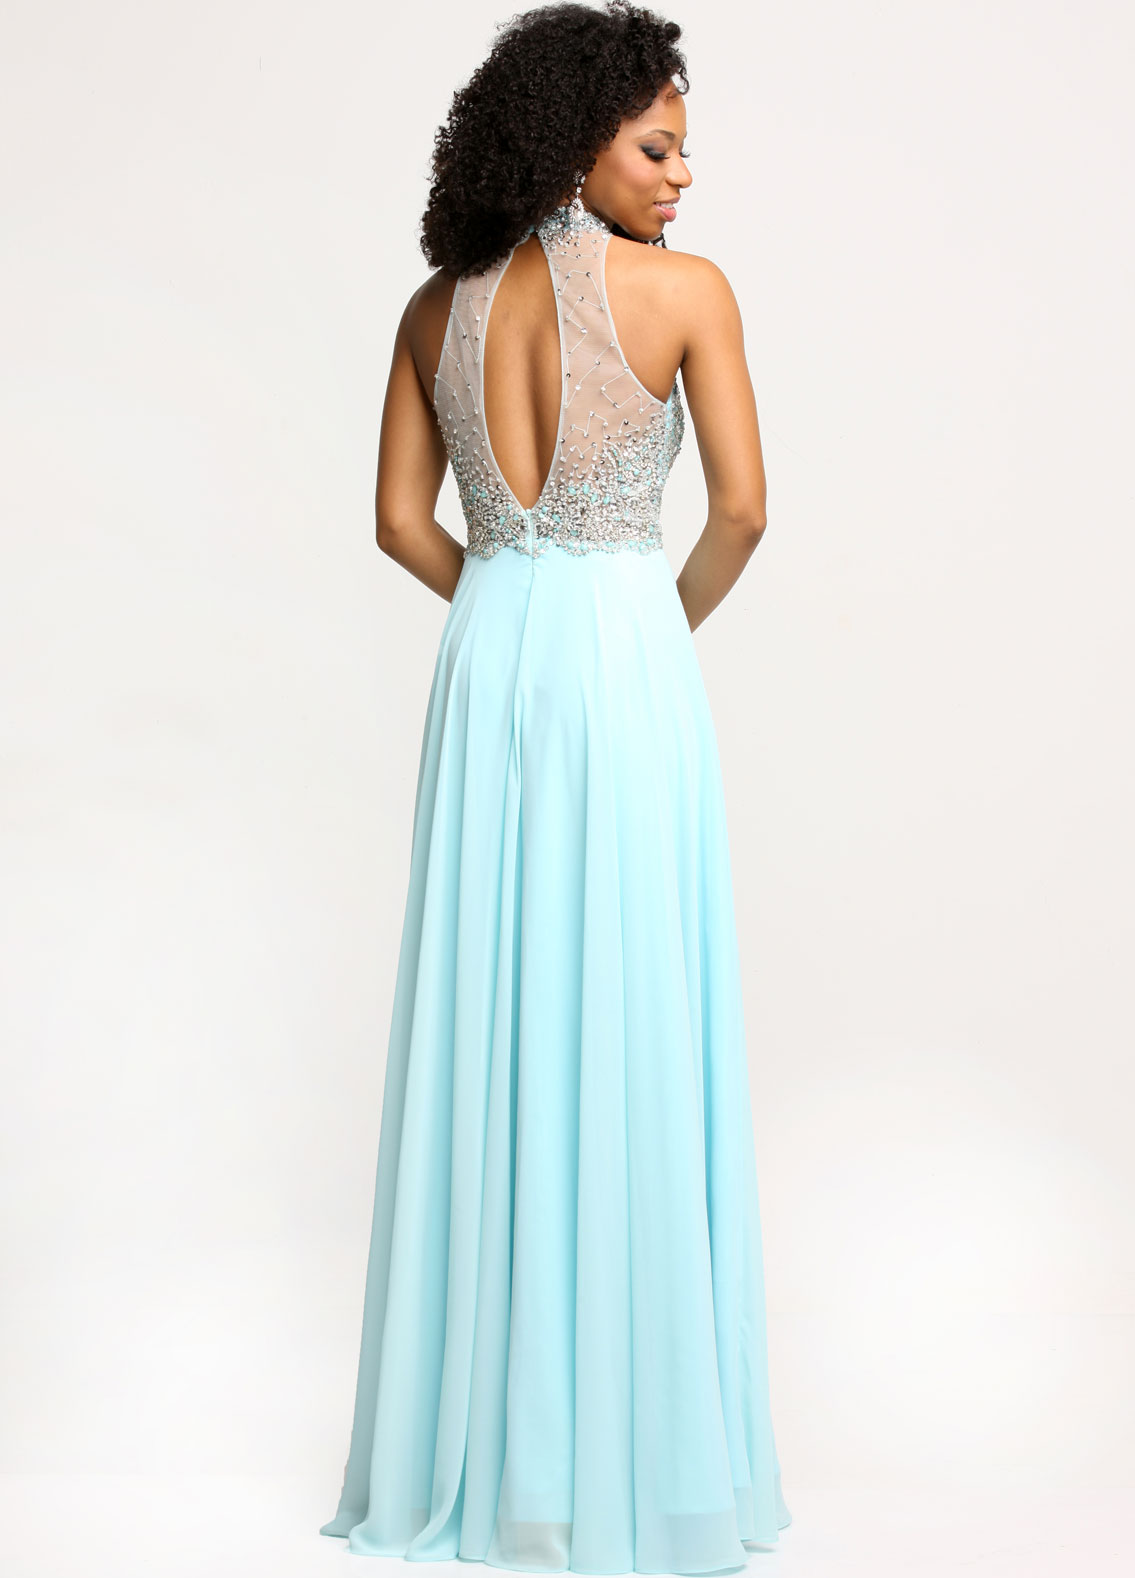 Image showing back view of style #71711